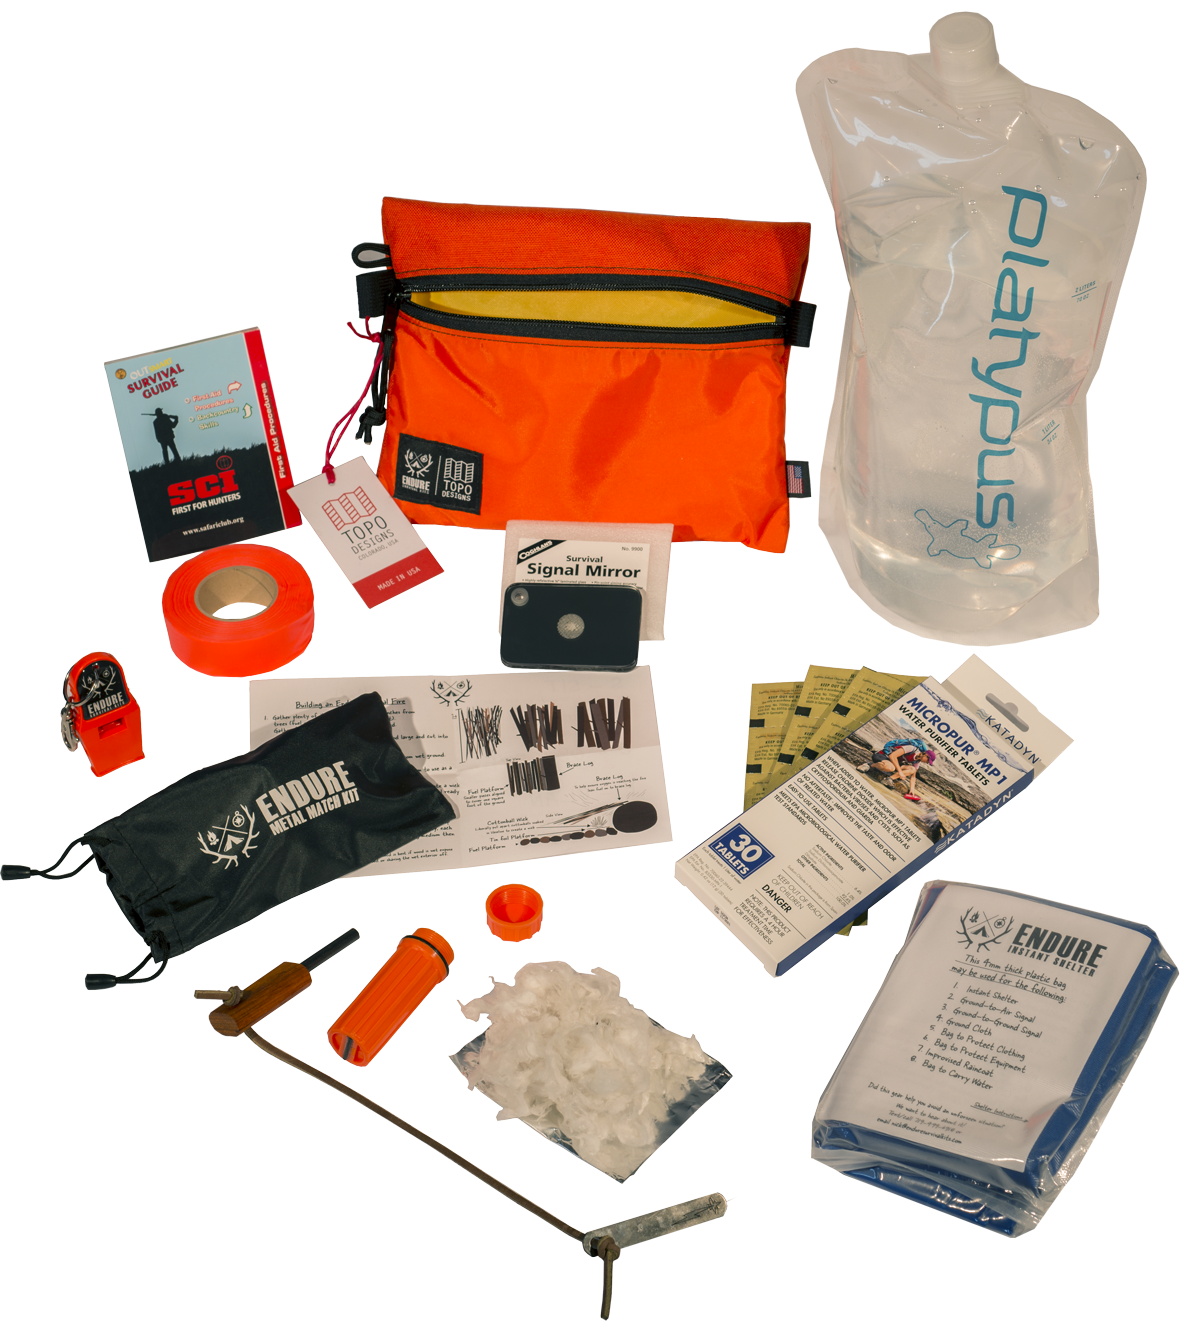 Best Survival Tools for Wilderness survival gear and equipment backcountry survival kit backcountry survival kit